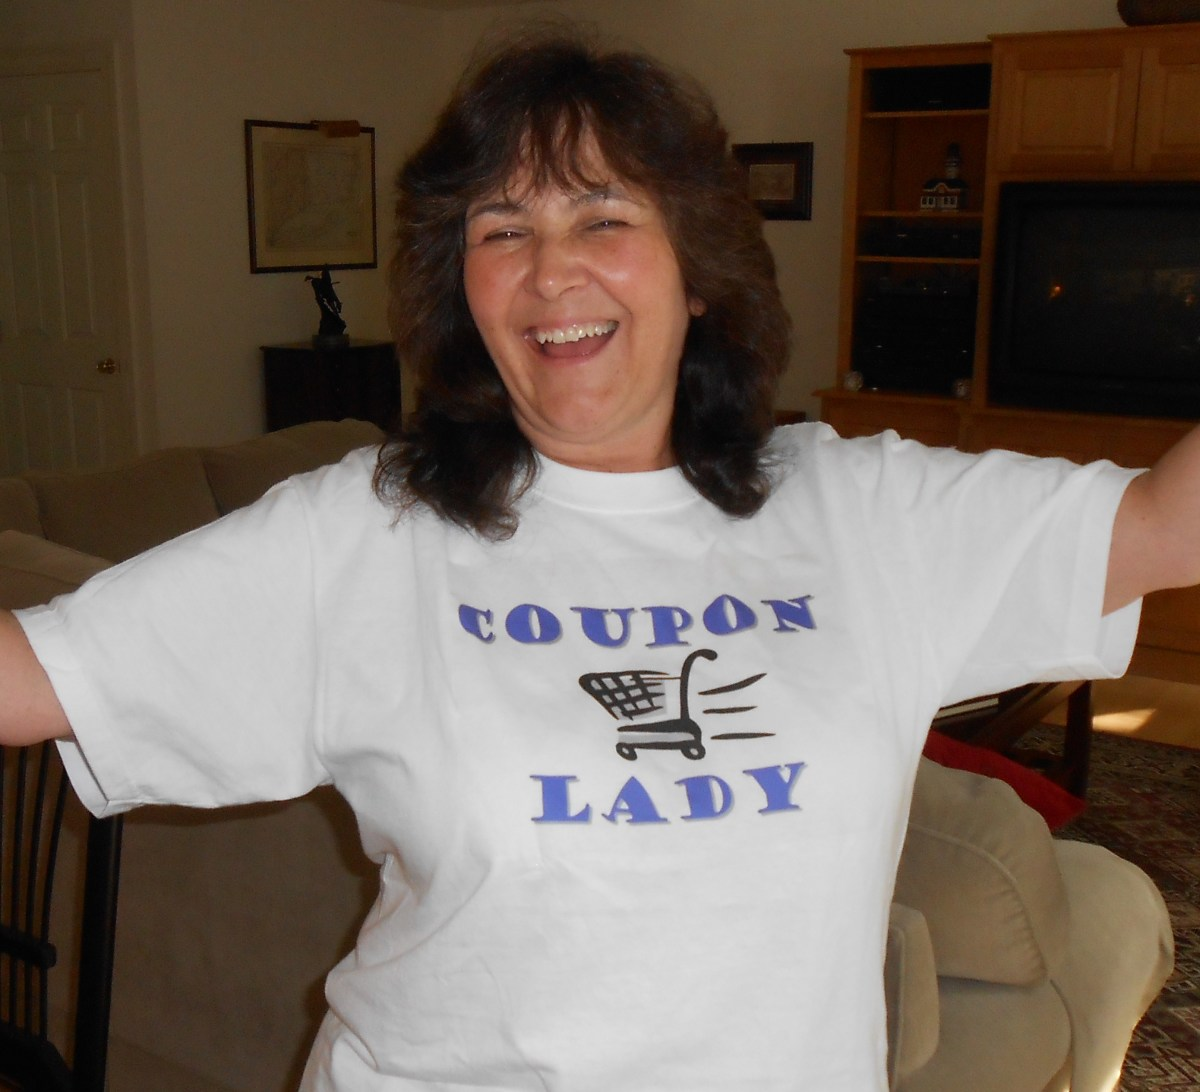 "I had this ""Coupon Lady"" shirt specially made for just for fun when I go grocery shopping. It does attract a lot of attention!"